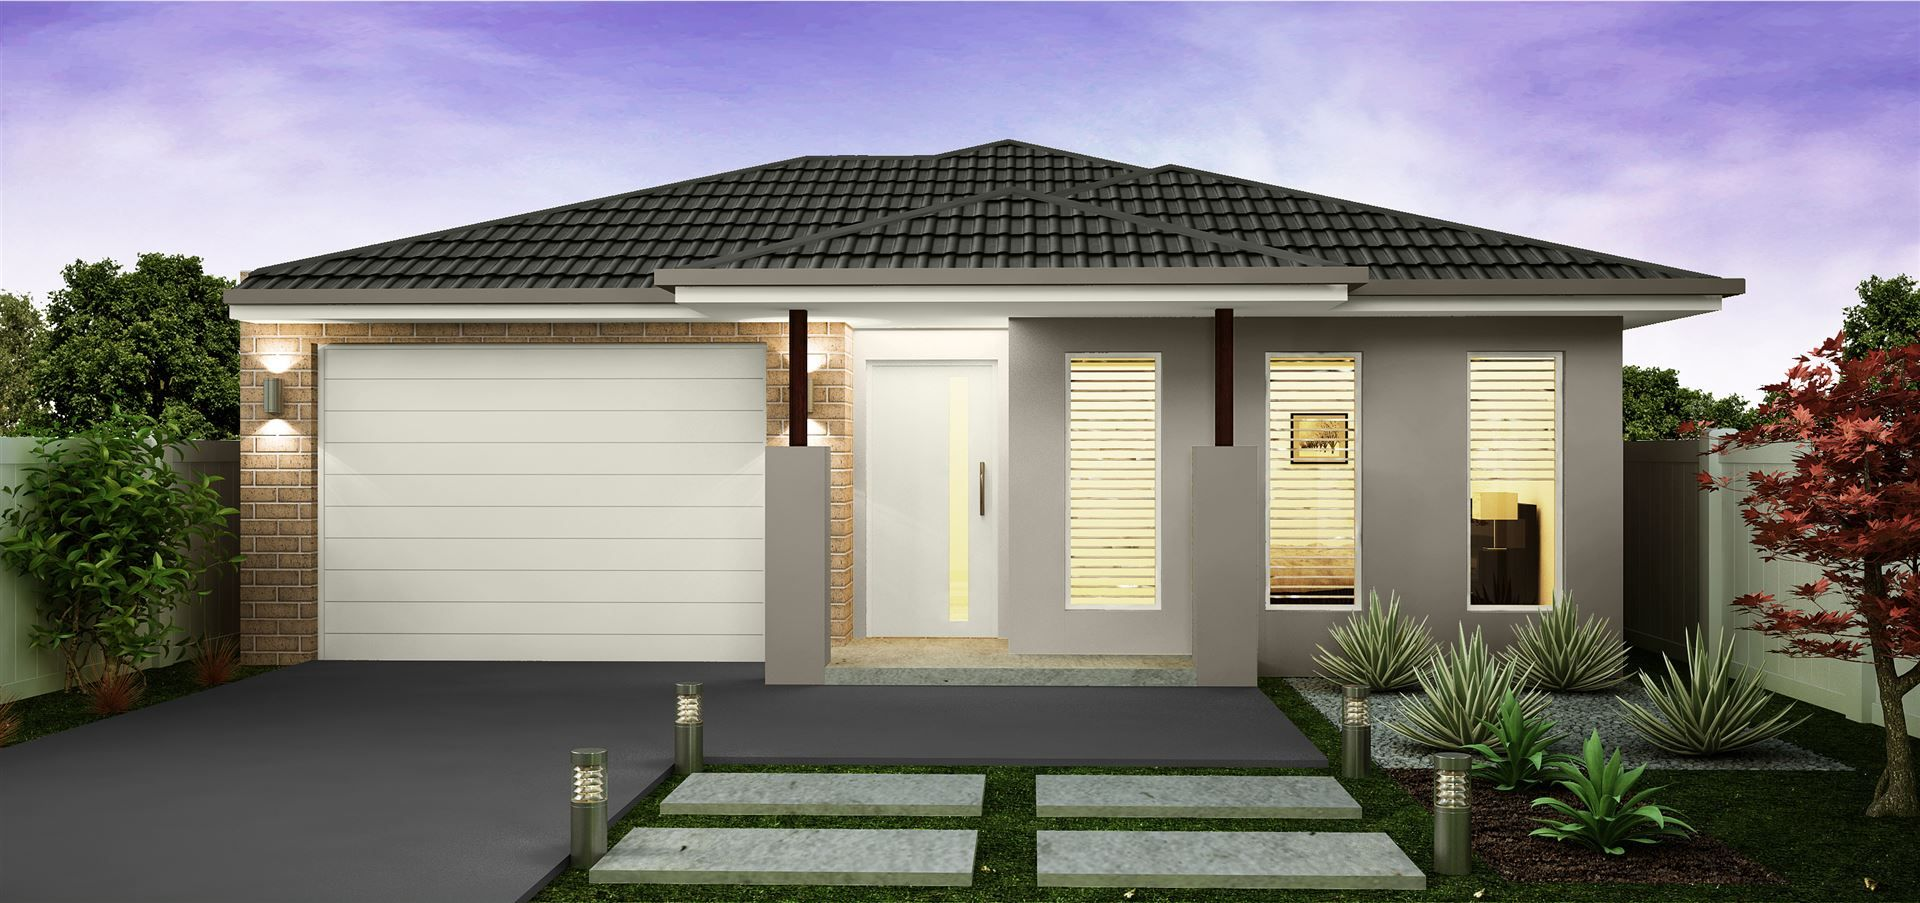 Lot 172 Burgess Street, Mernda VIC 3754, Image 0